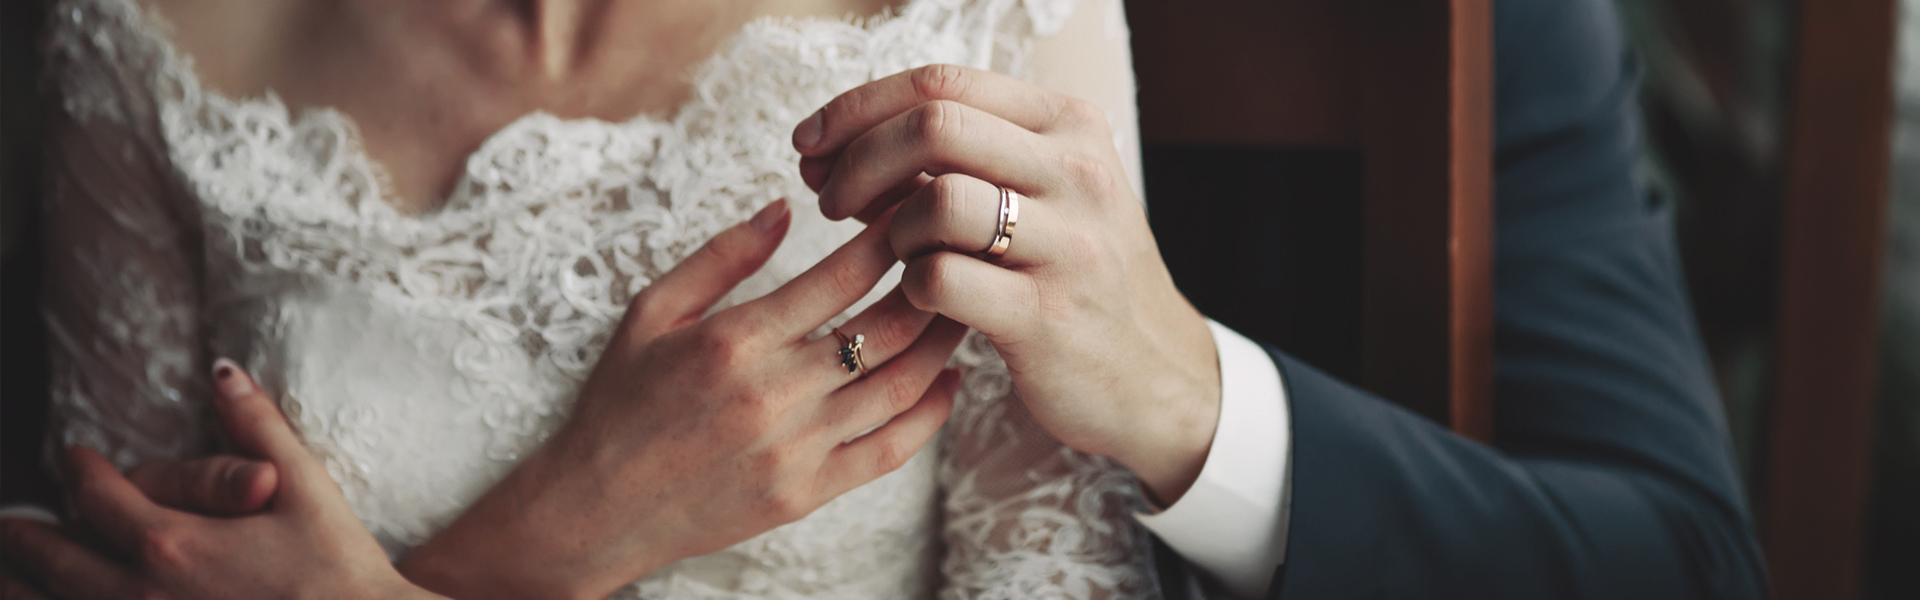 Planning for a Pandemic Wedding by Steffans Northampton